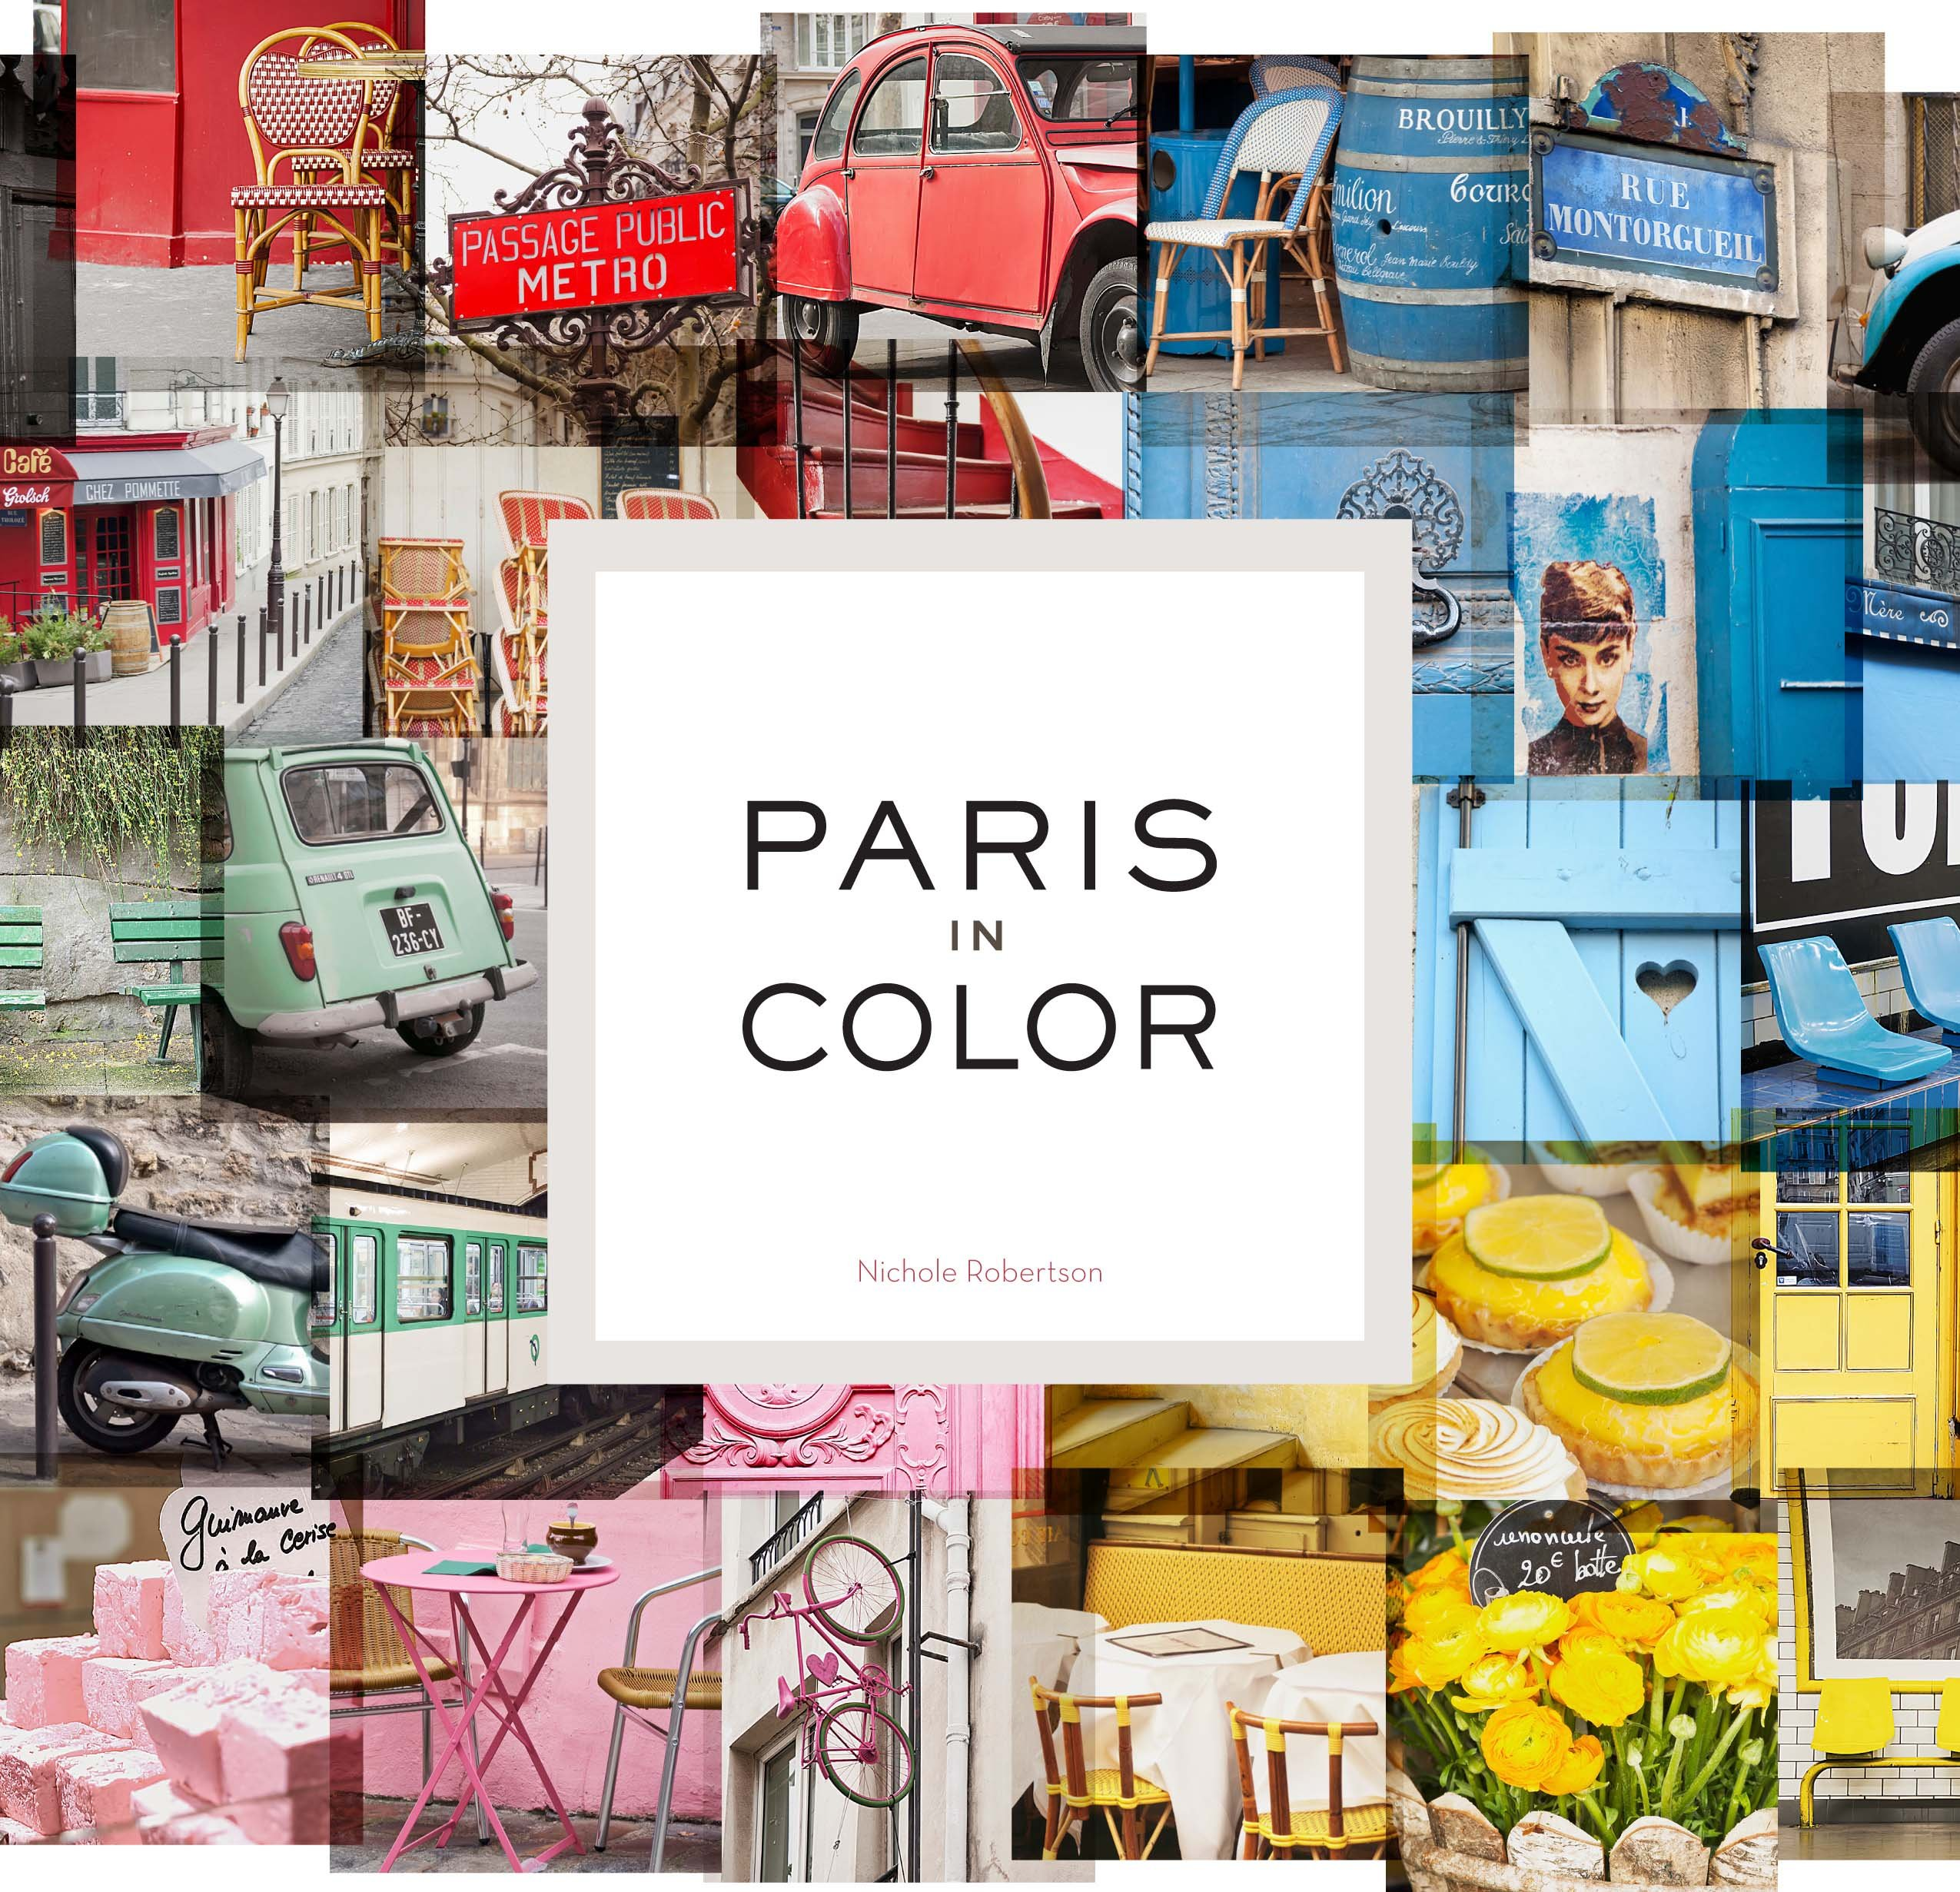 Paris Color Nichole Robertson product image